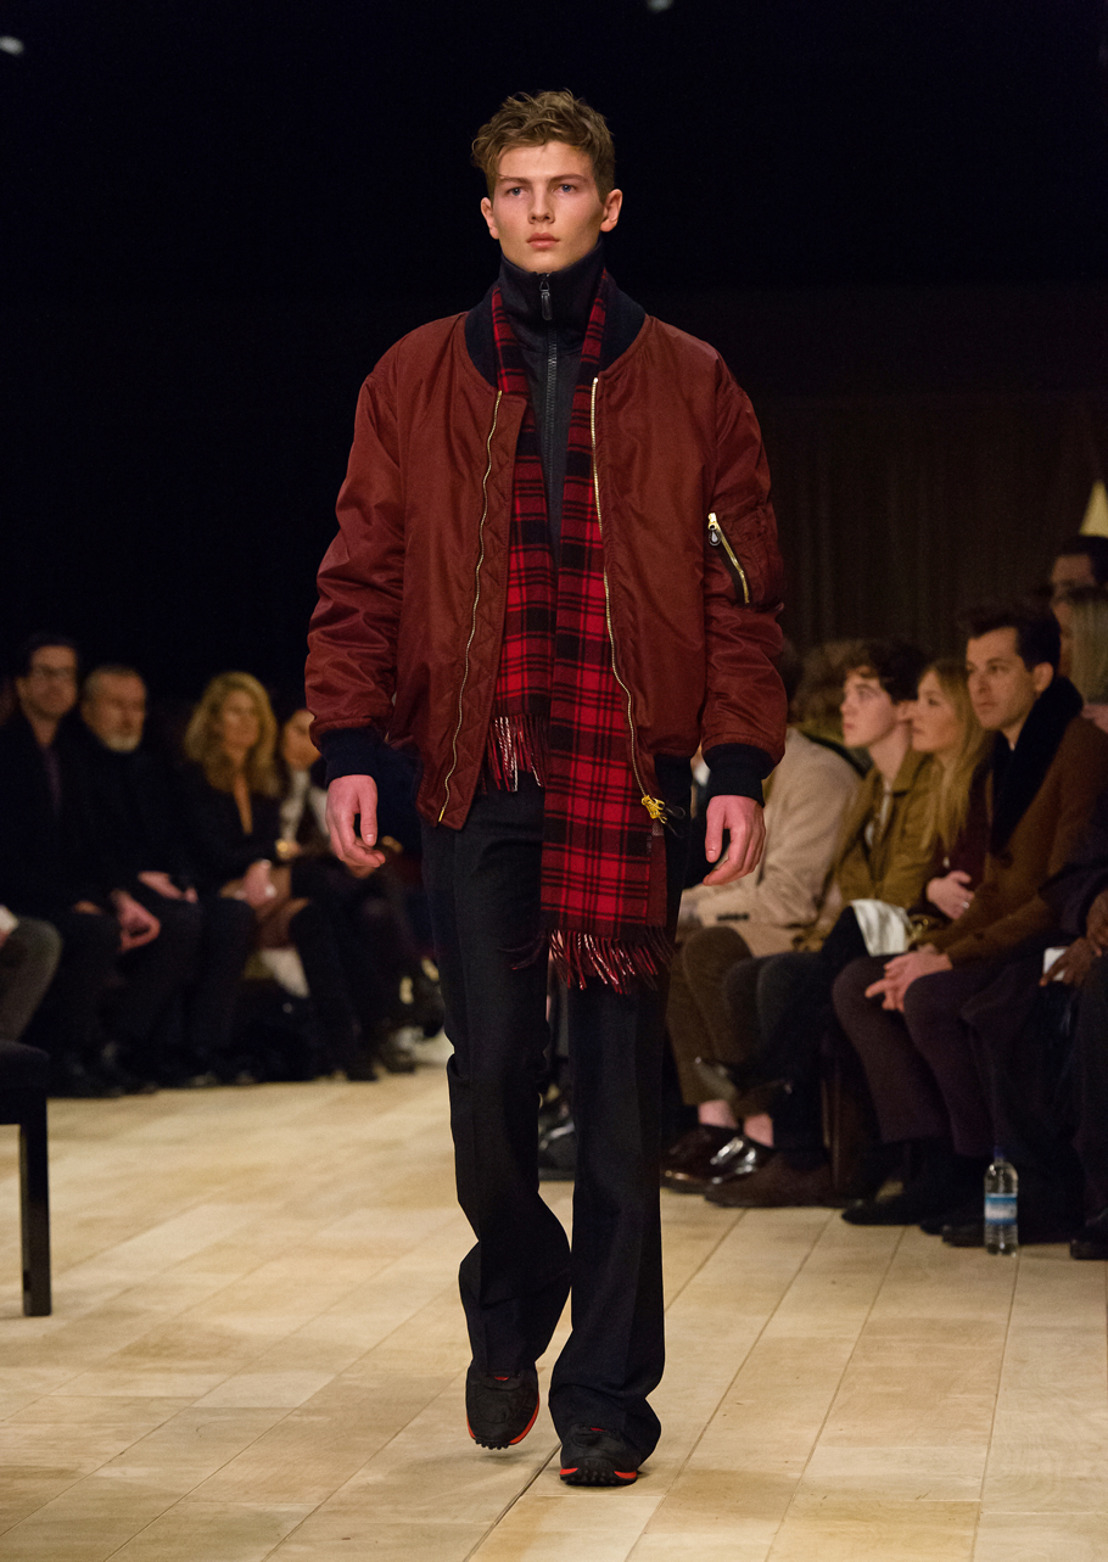 BURBERRY OUTWEAR FALL WINTER 16